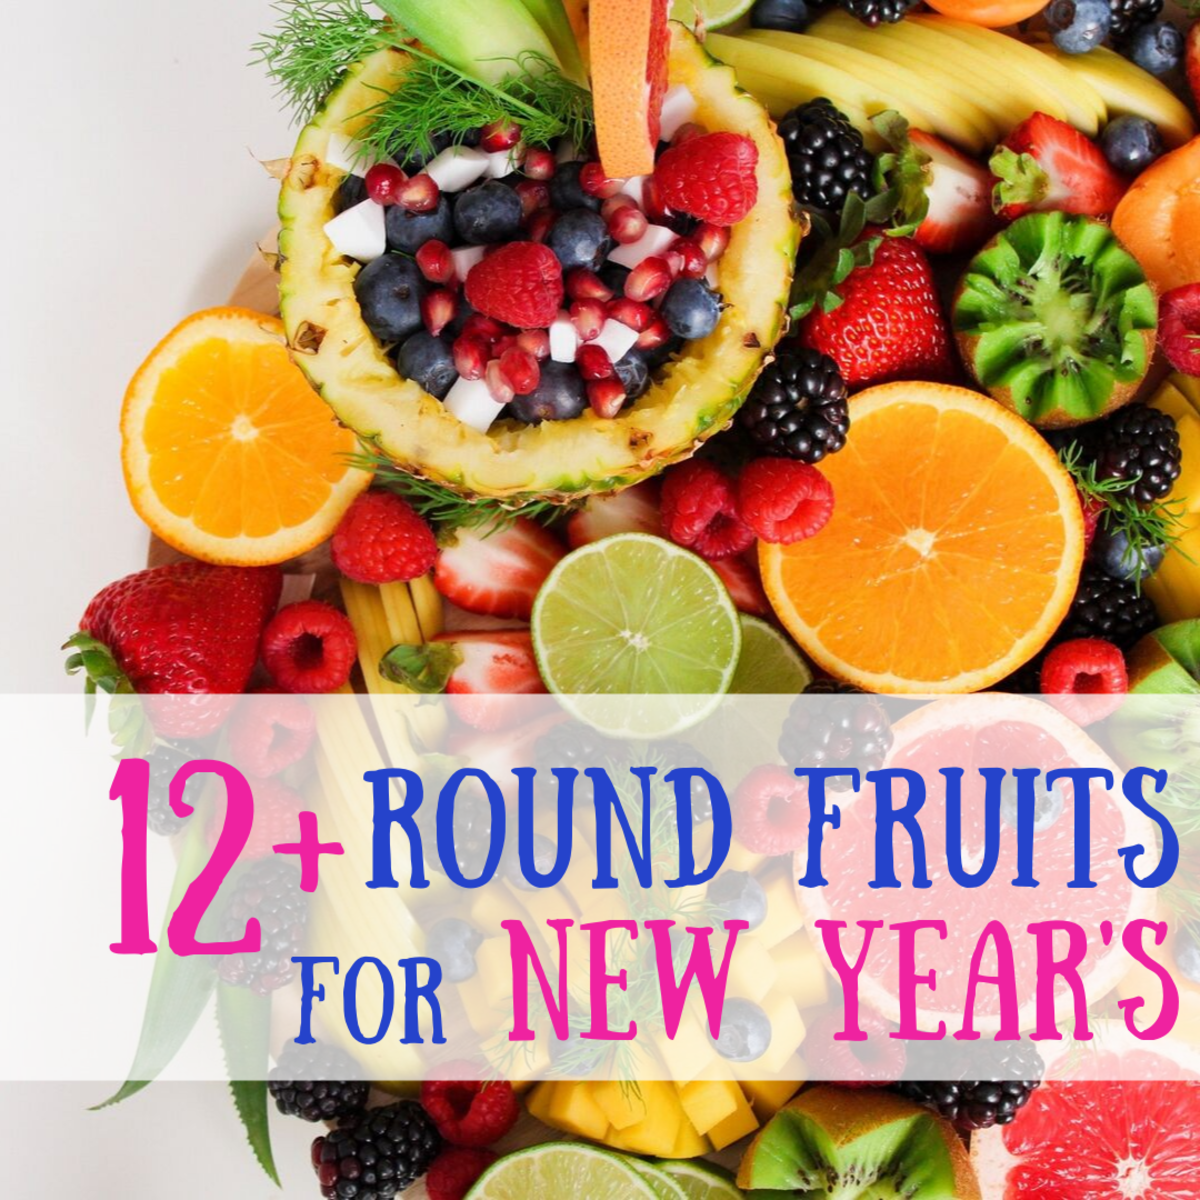 It's a Filipino tradition to welcome the new year by serving 12 circular fruits.